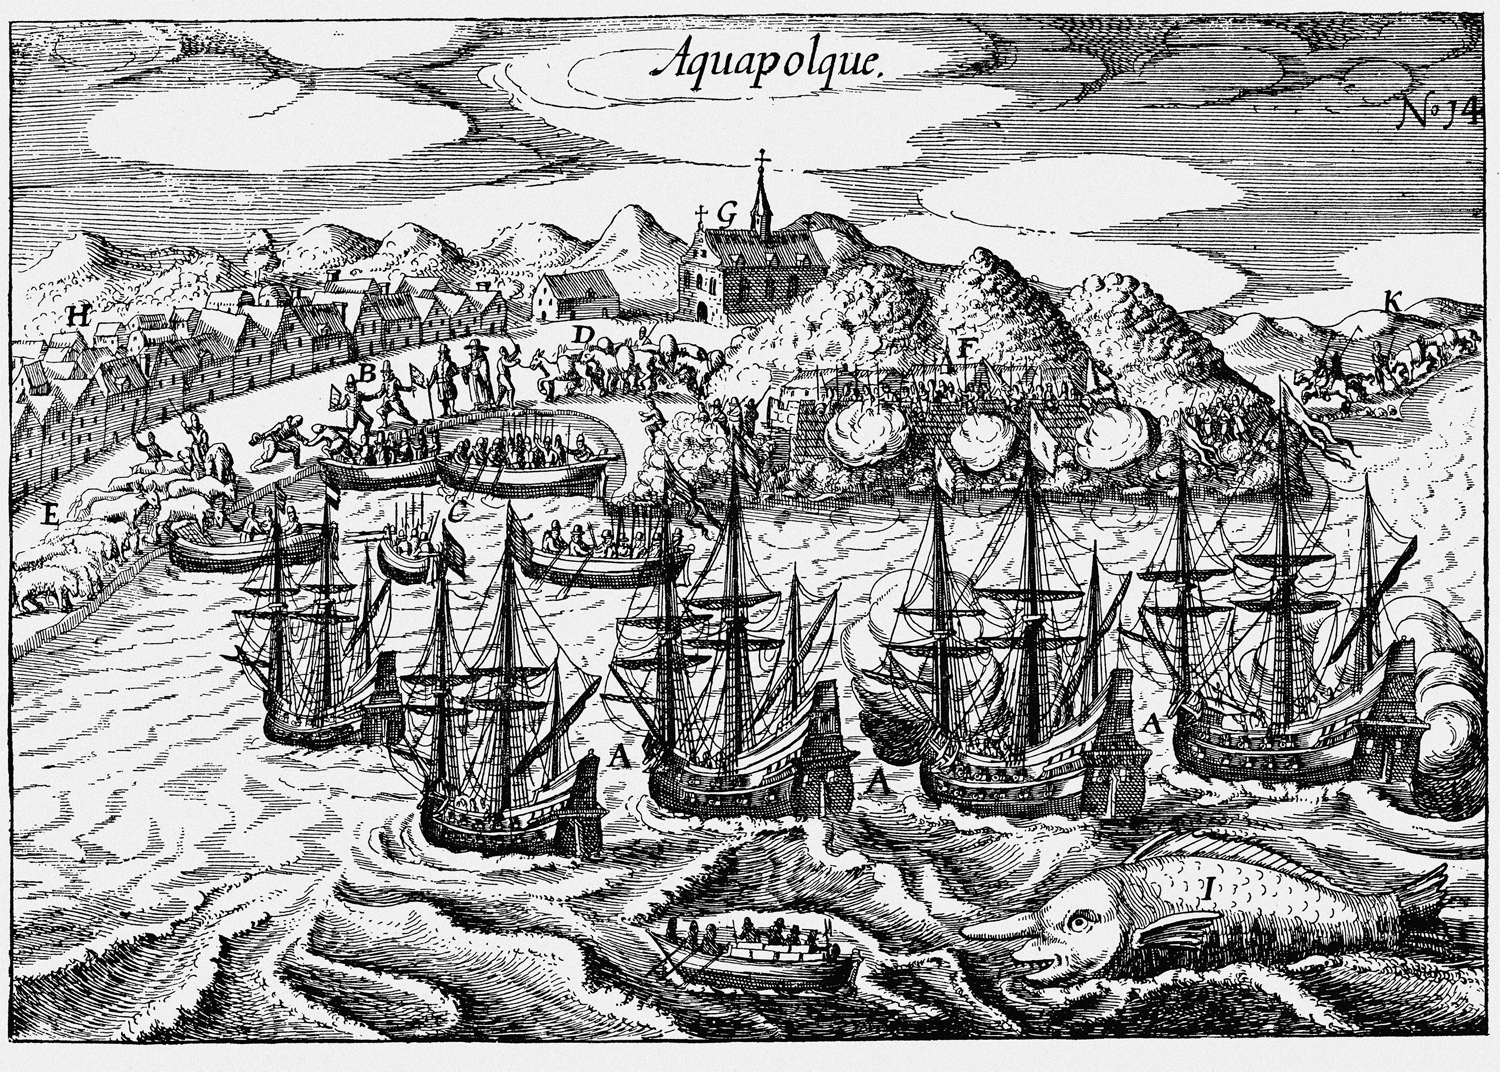 'Aquapolque' (Acapulco) by Nicolaes van Geelkercken, engraving, from 'East and West Indian Mirror' (1619) (Tom Christensen, from '1616: The World in Motion', Counterpoint Press, 2012)